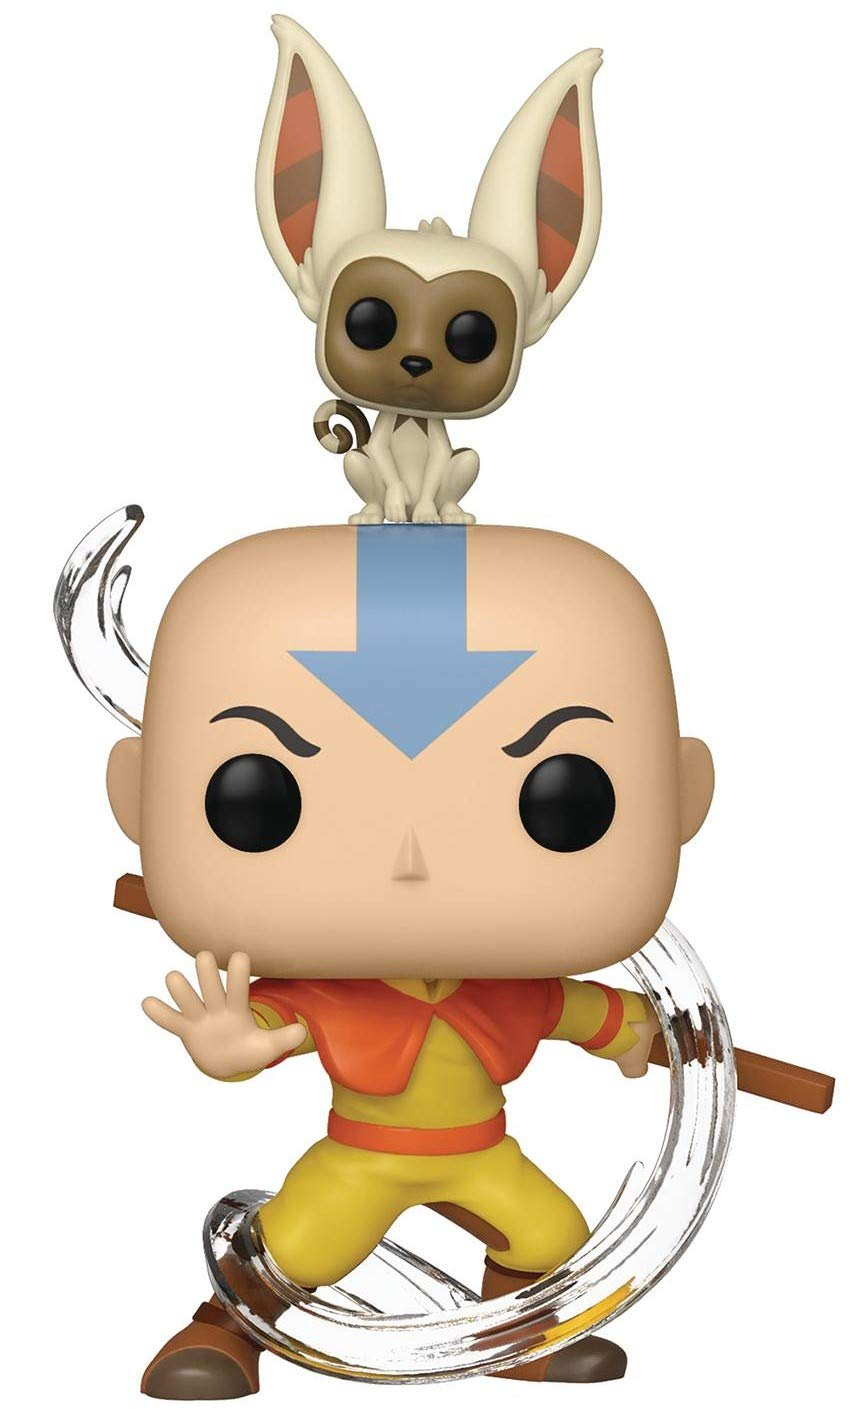 Aang with Momo Pop Funko Avatar: The Last Airbender Includes Compatible Pop Box Protector Case Vinyl Figure